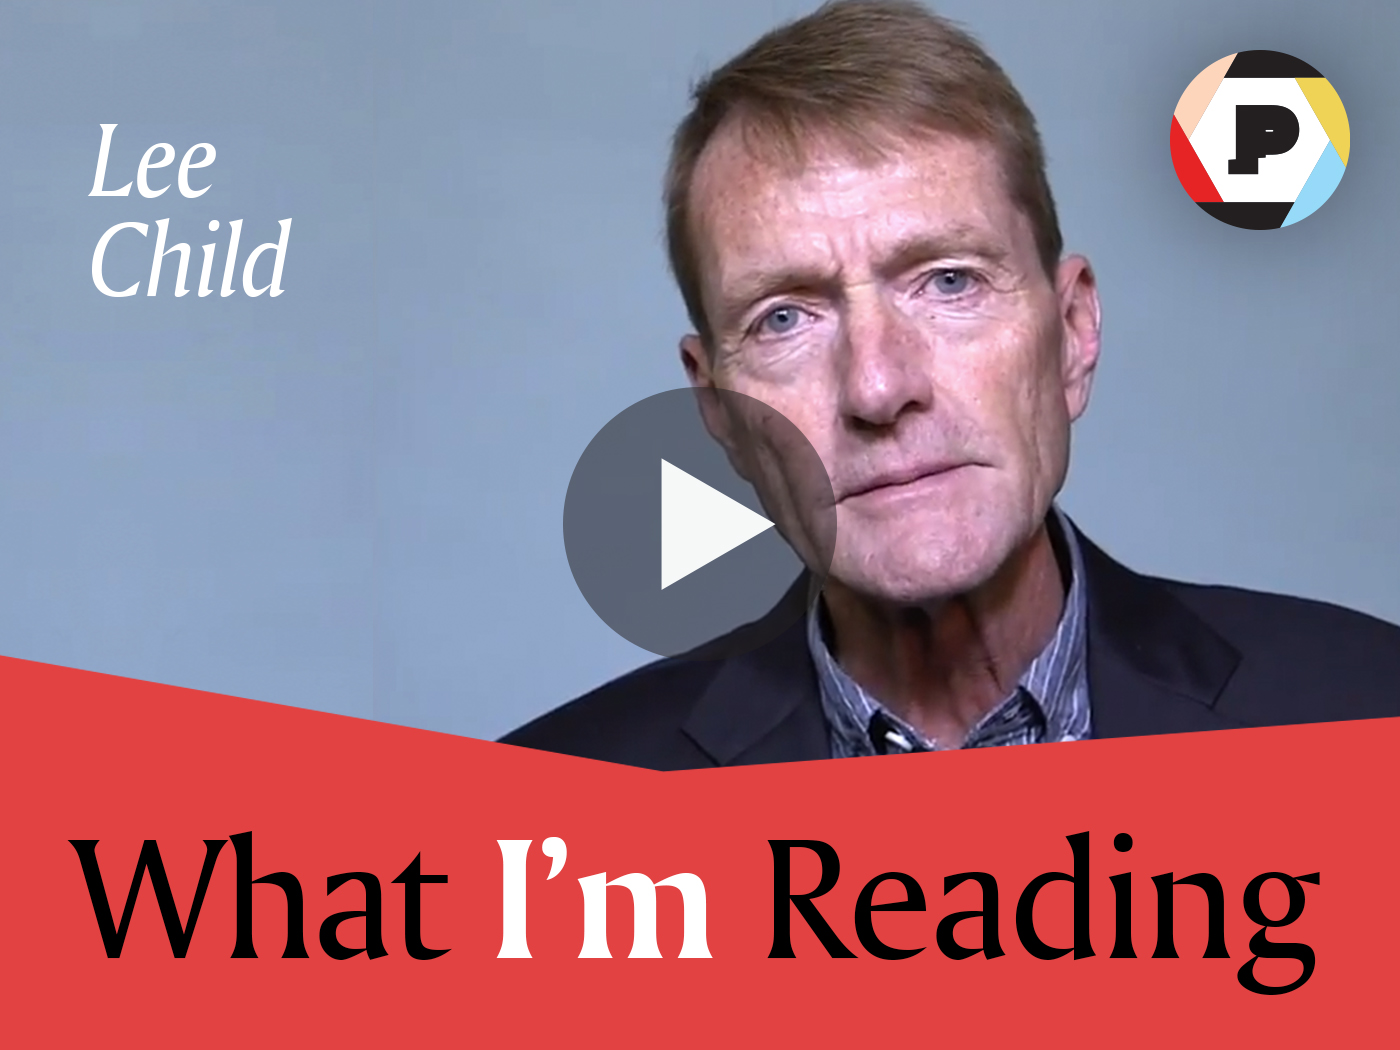 Lee Child What I'm Reading